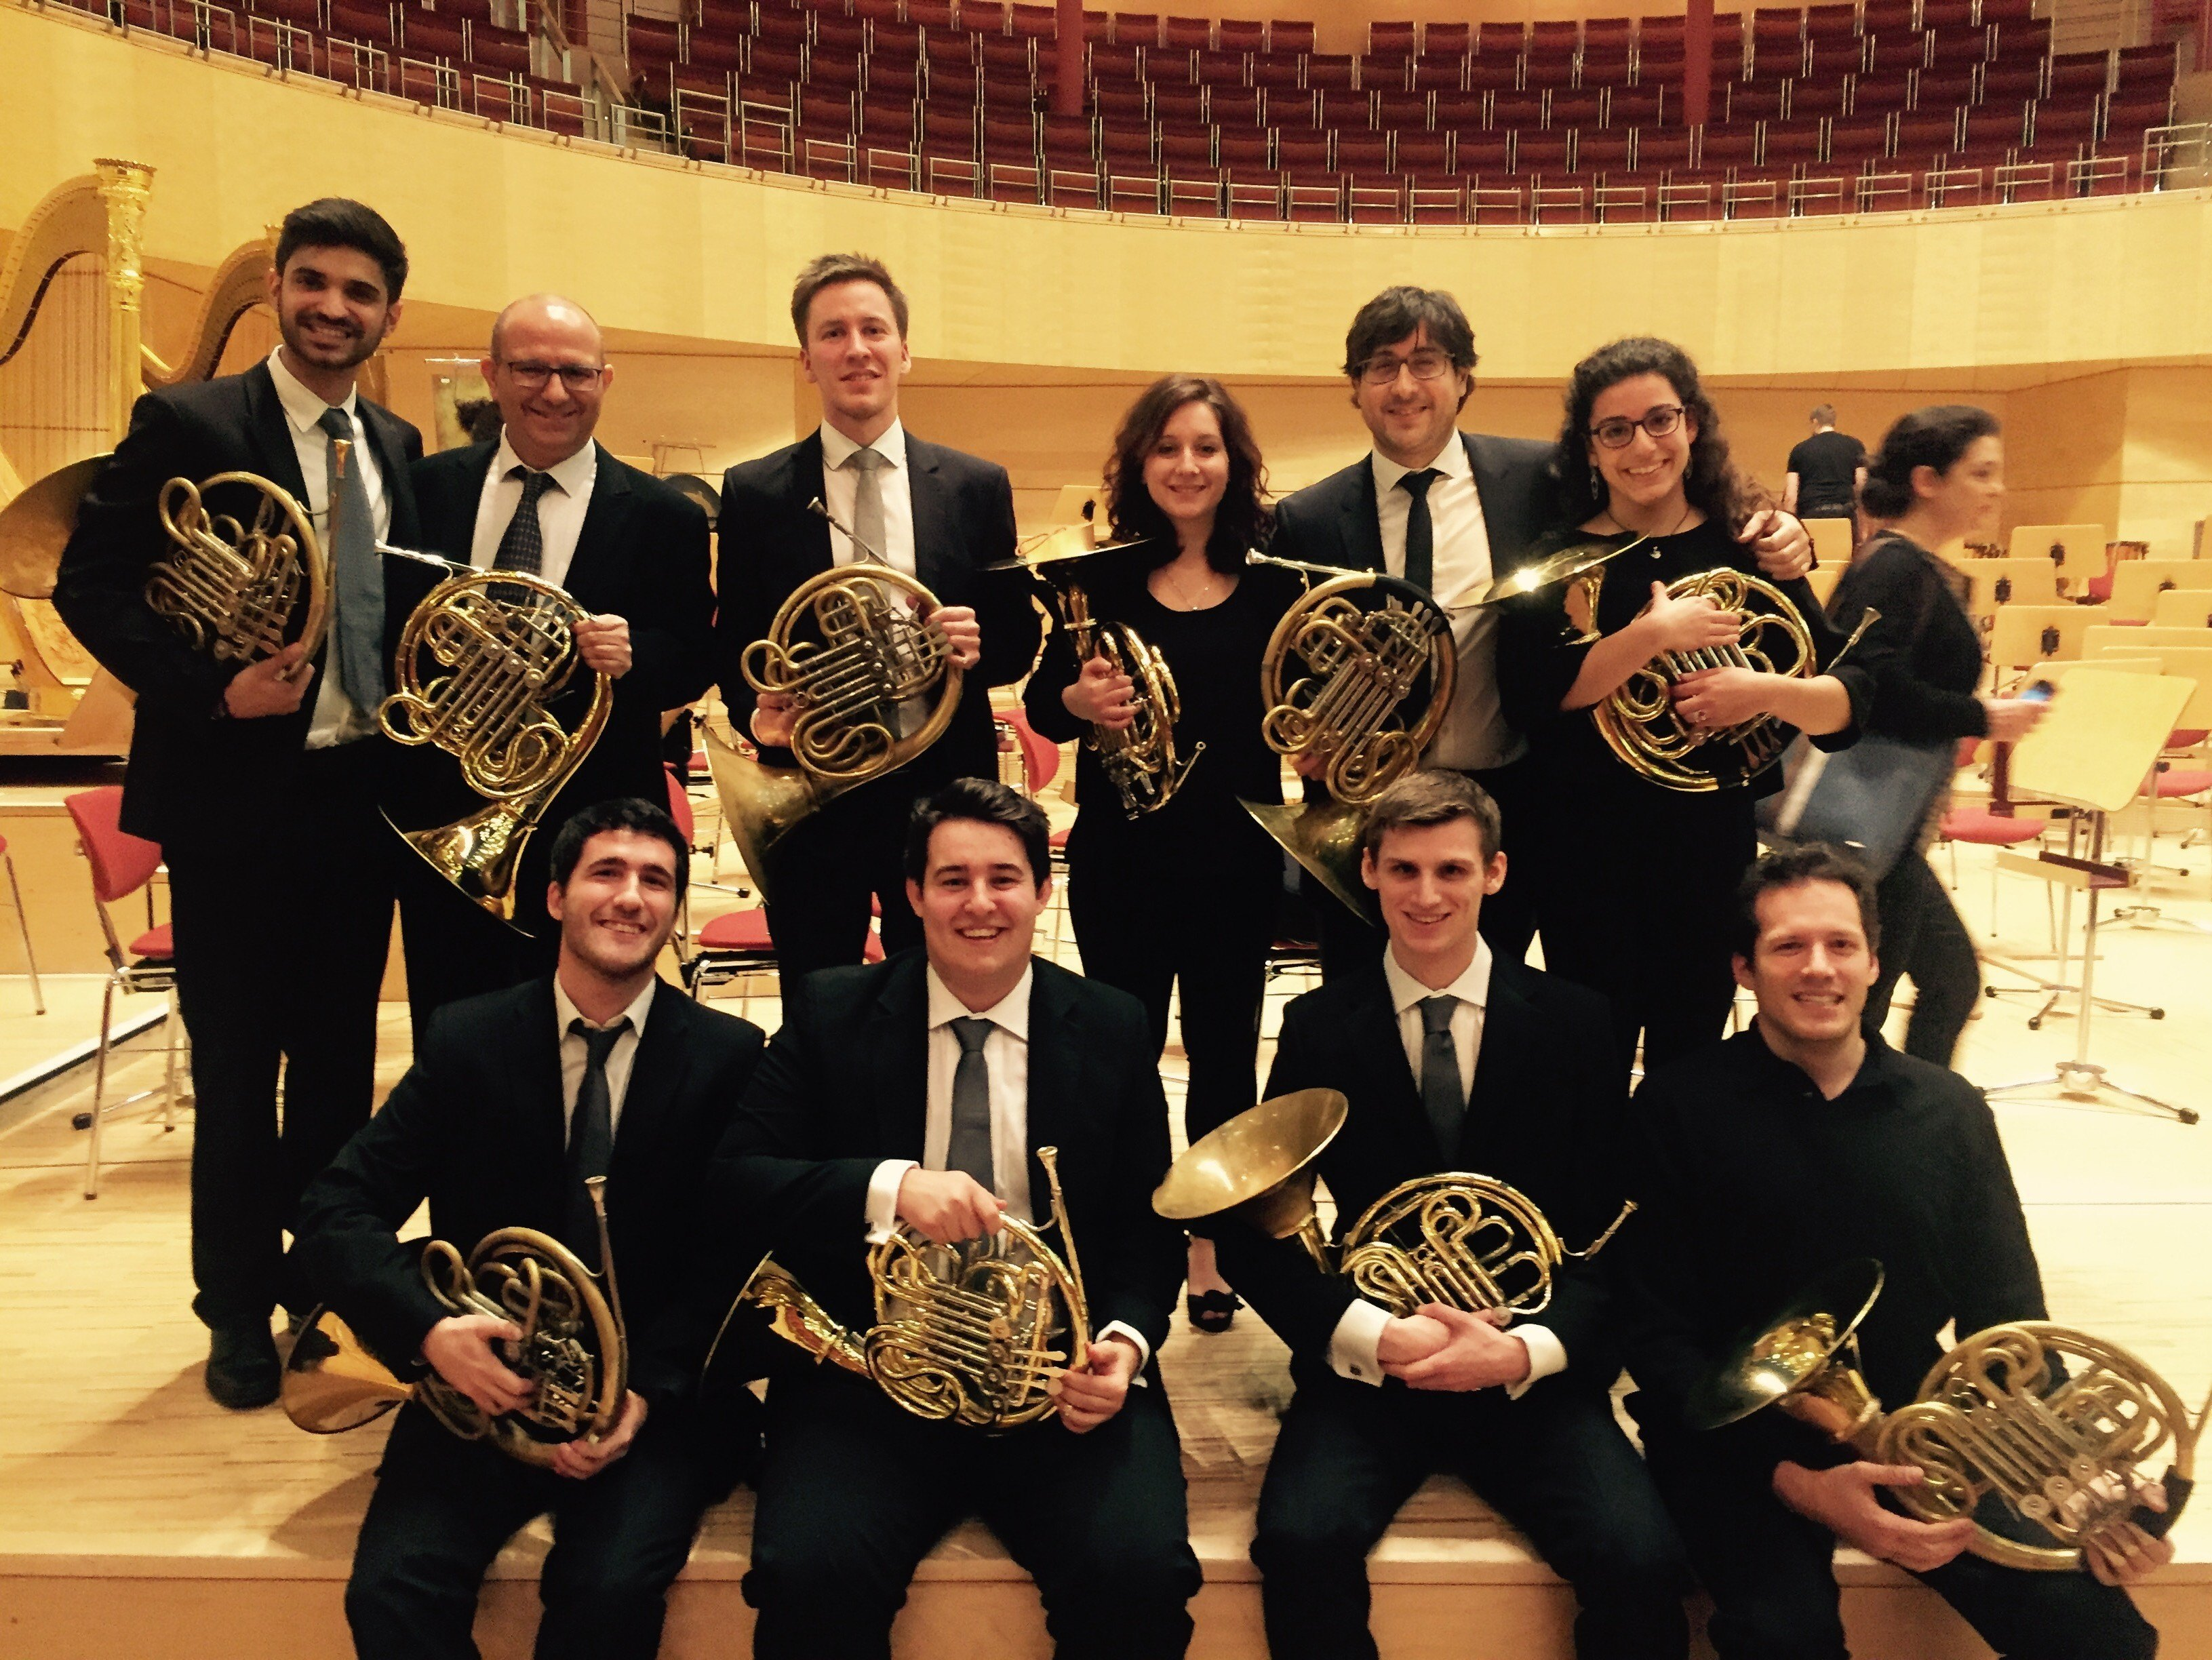 Ingenium Alumnus Matt Head with the Mahler Chamber Orchestra Academy